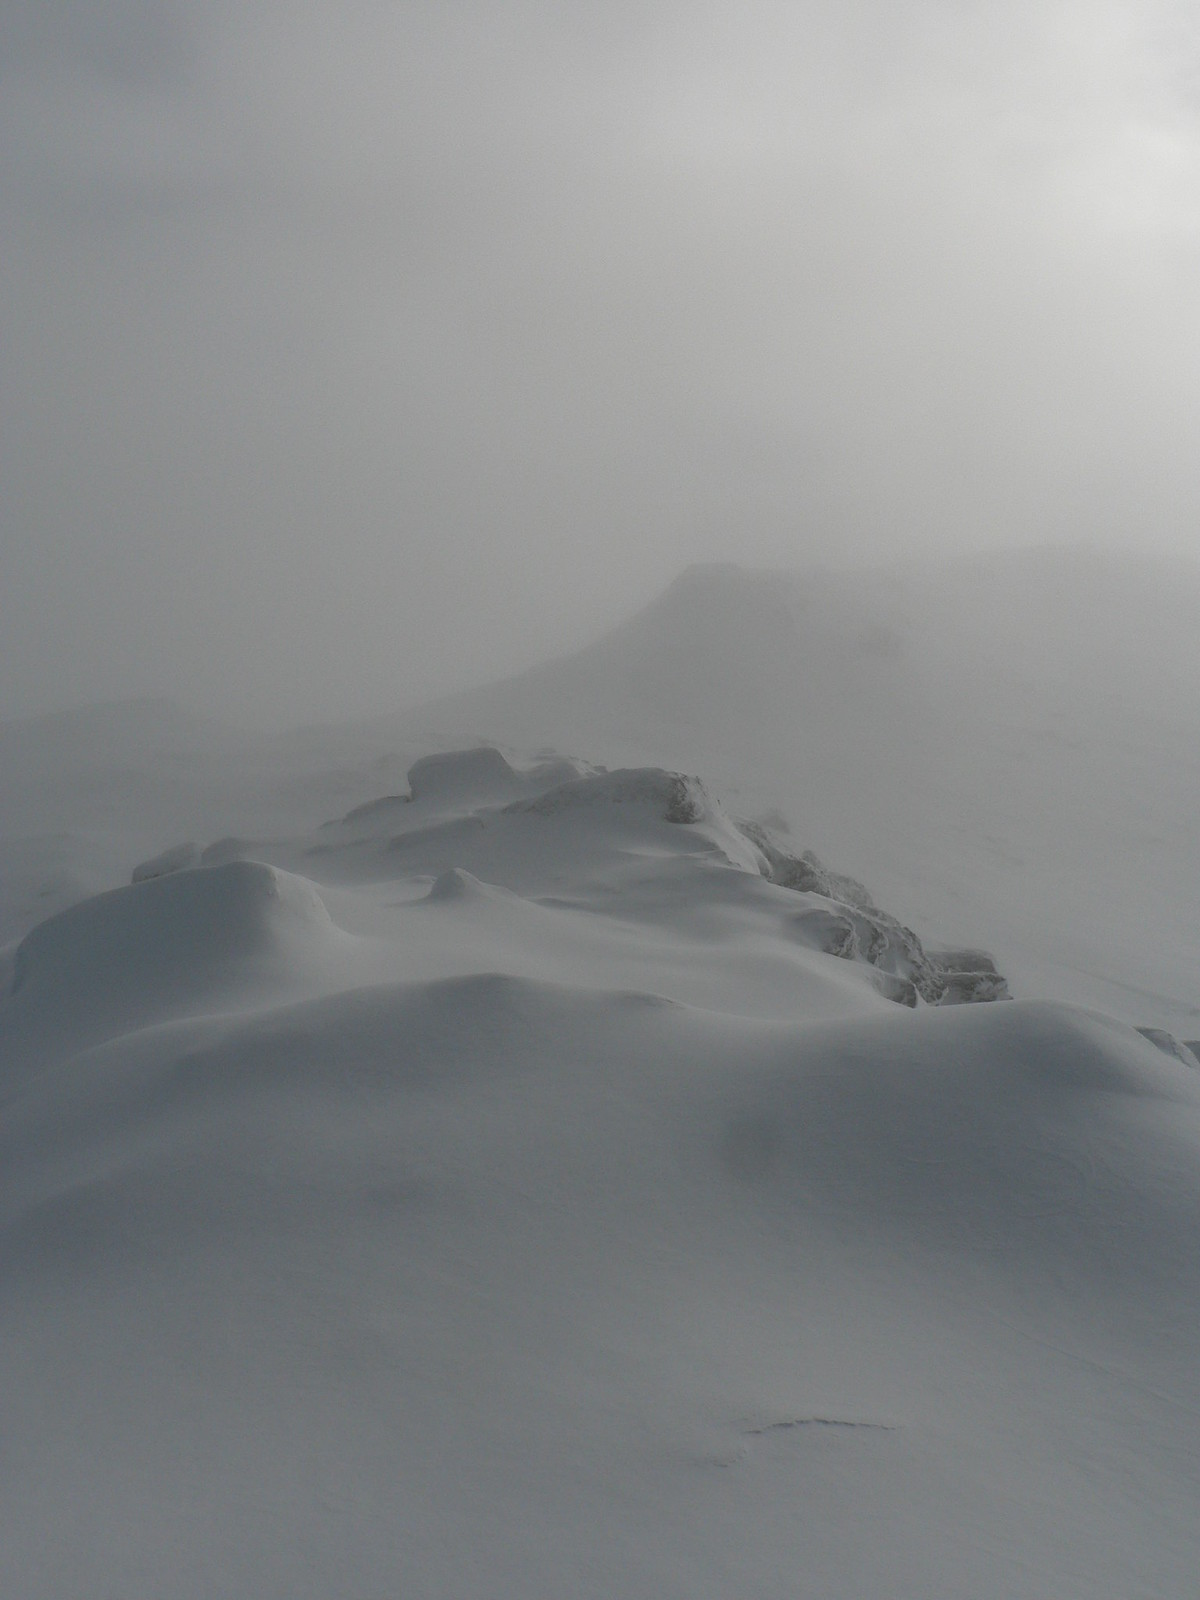 Pristine powdery snow! Just off the summit of An Caisteal.